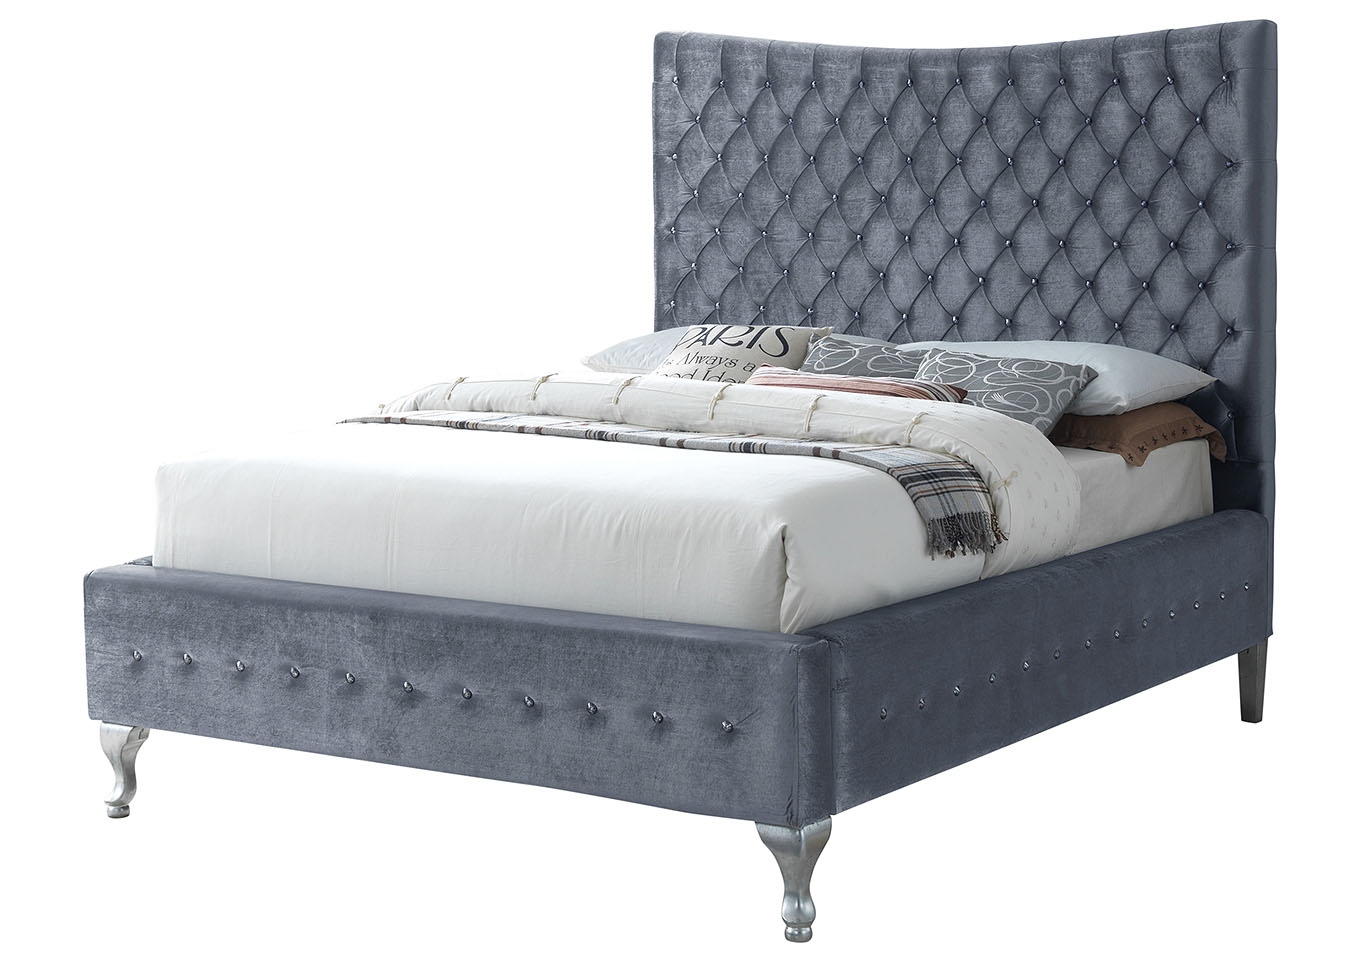 Gray King Size Tufted Upholstered Bed,Glory Furniture